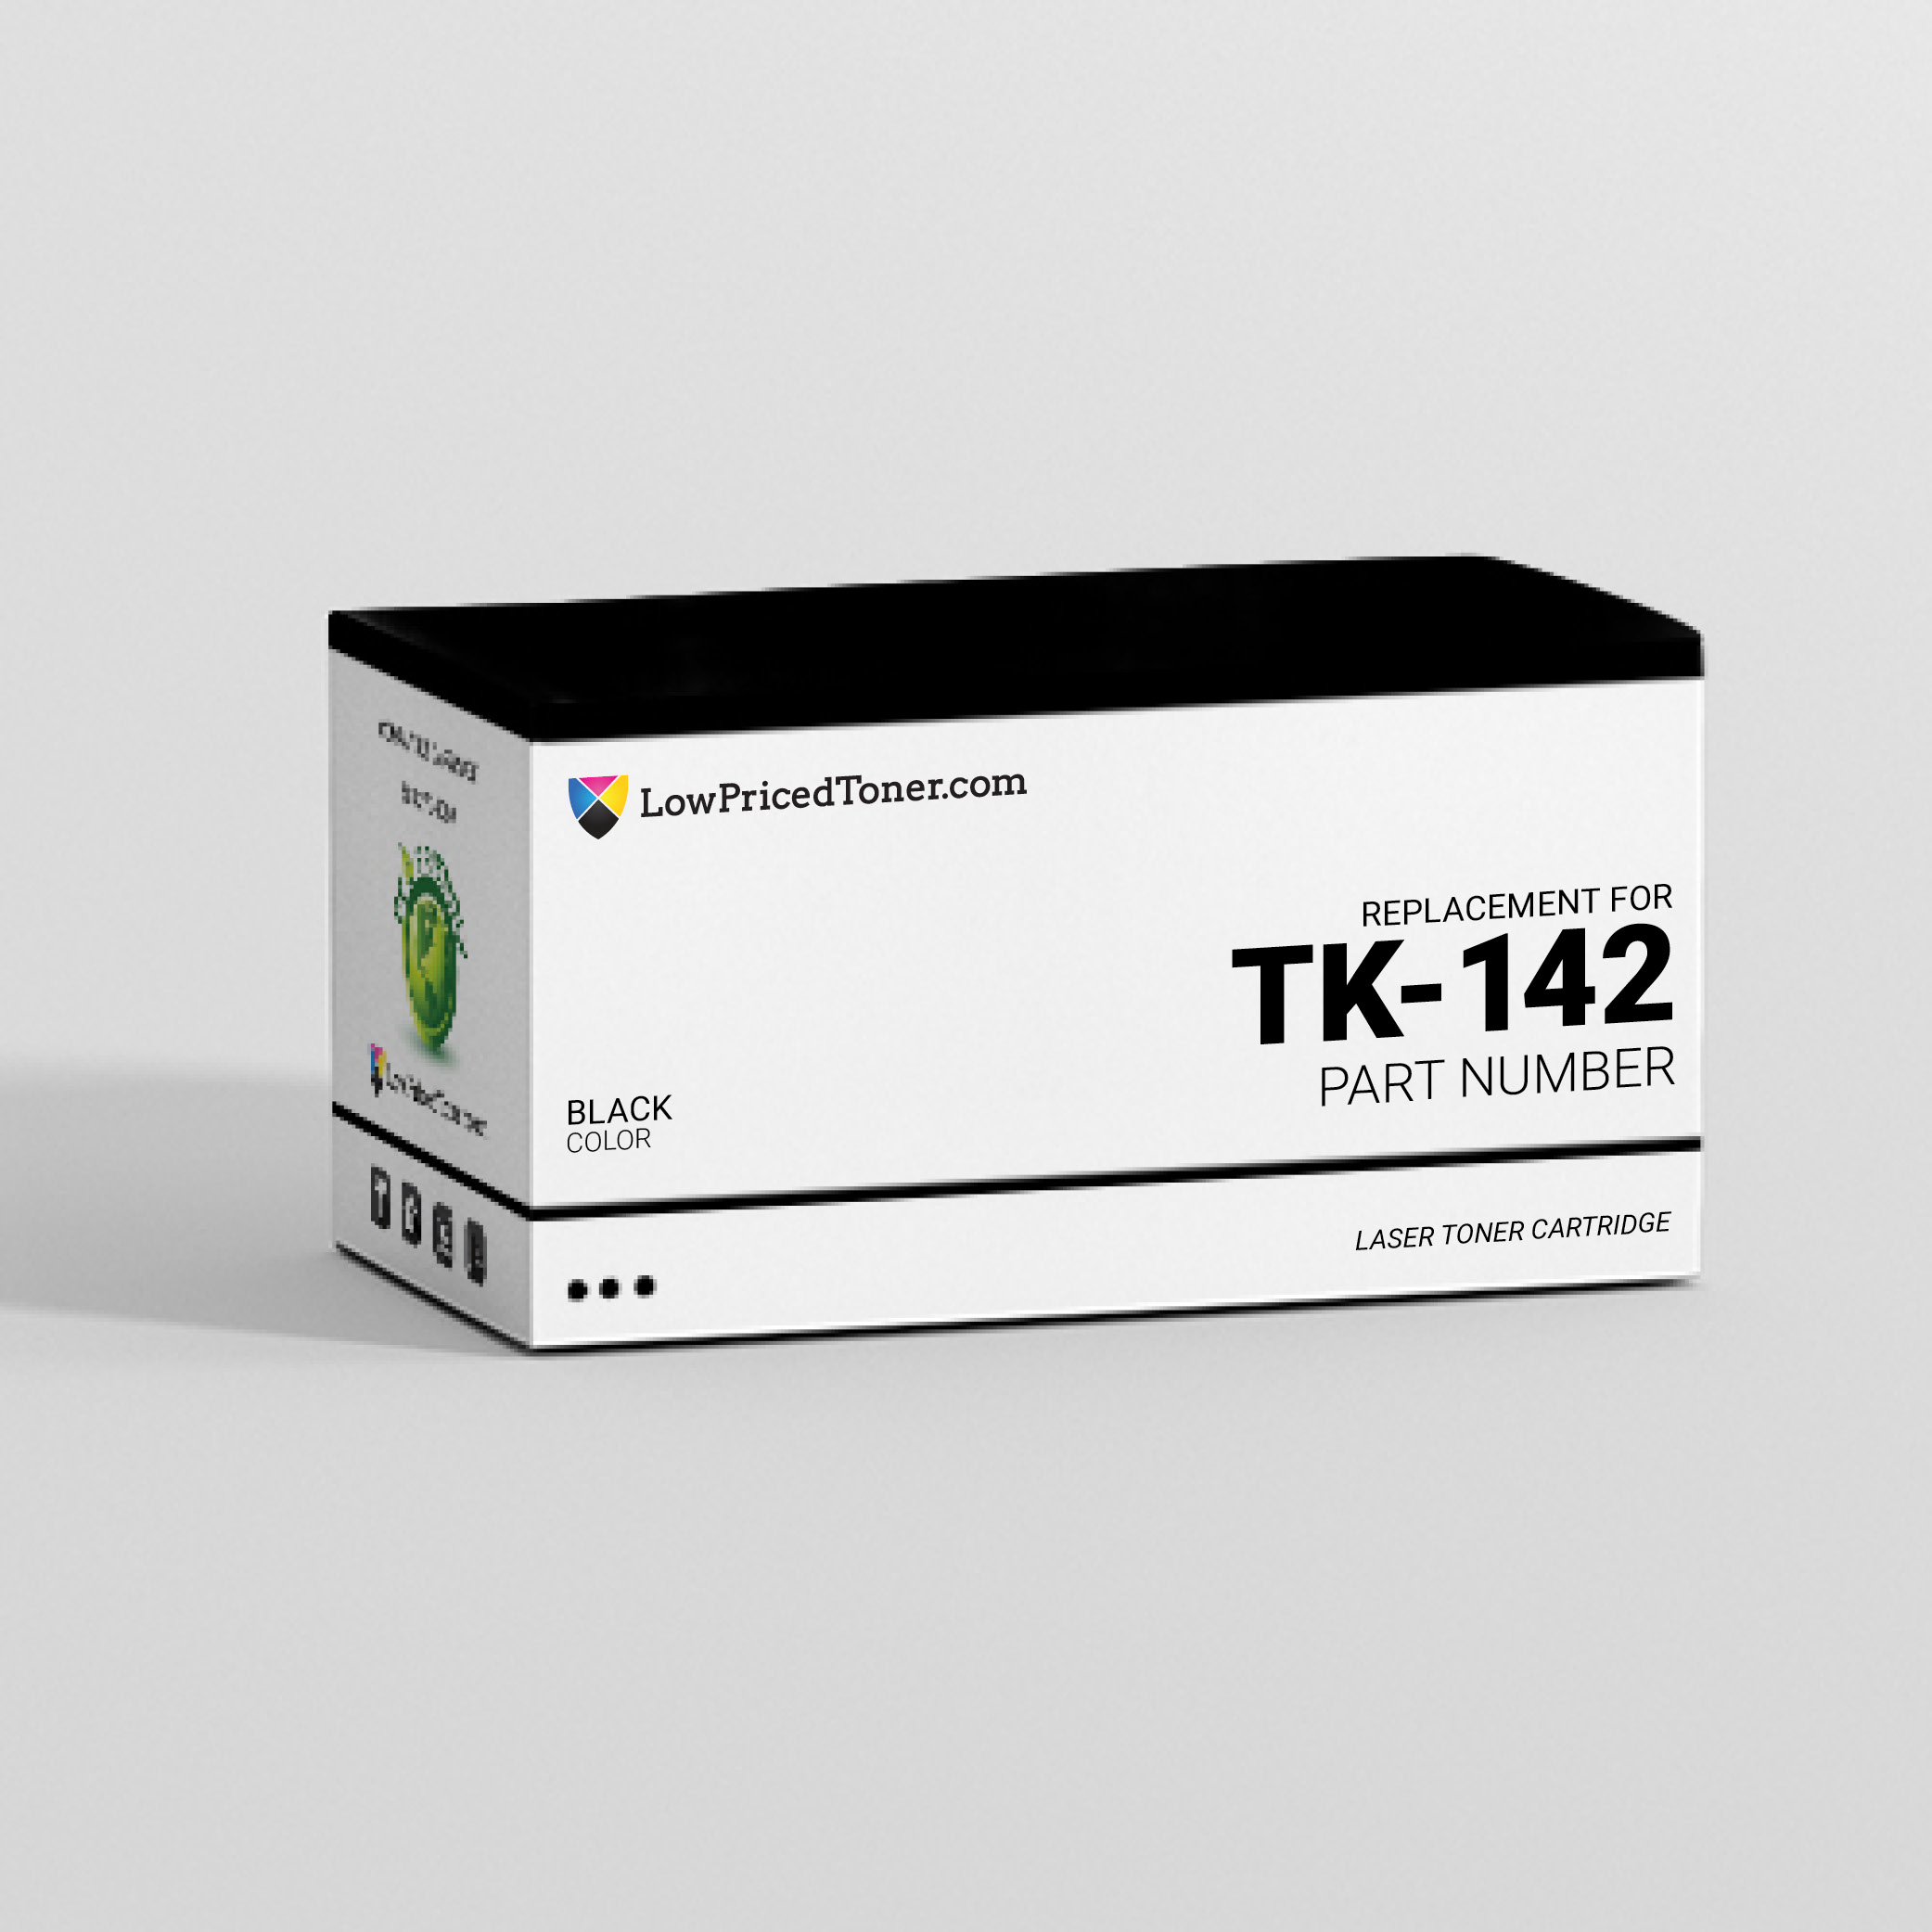 Kyocera Mita TK-142 Compatible Black Laser Toner Cartridge